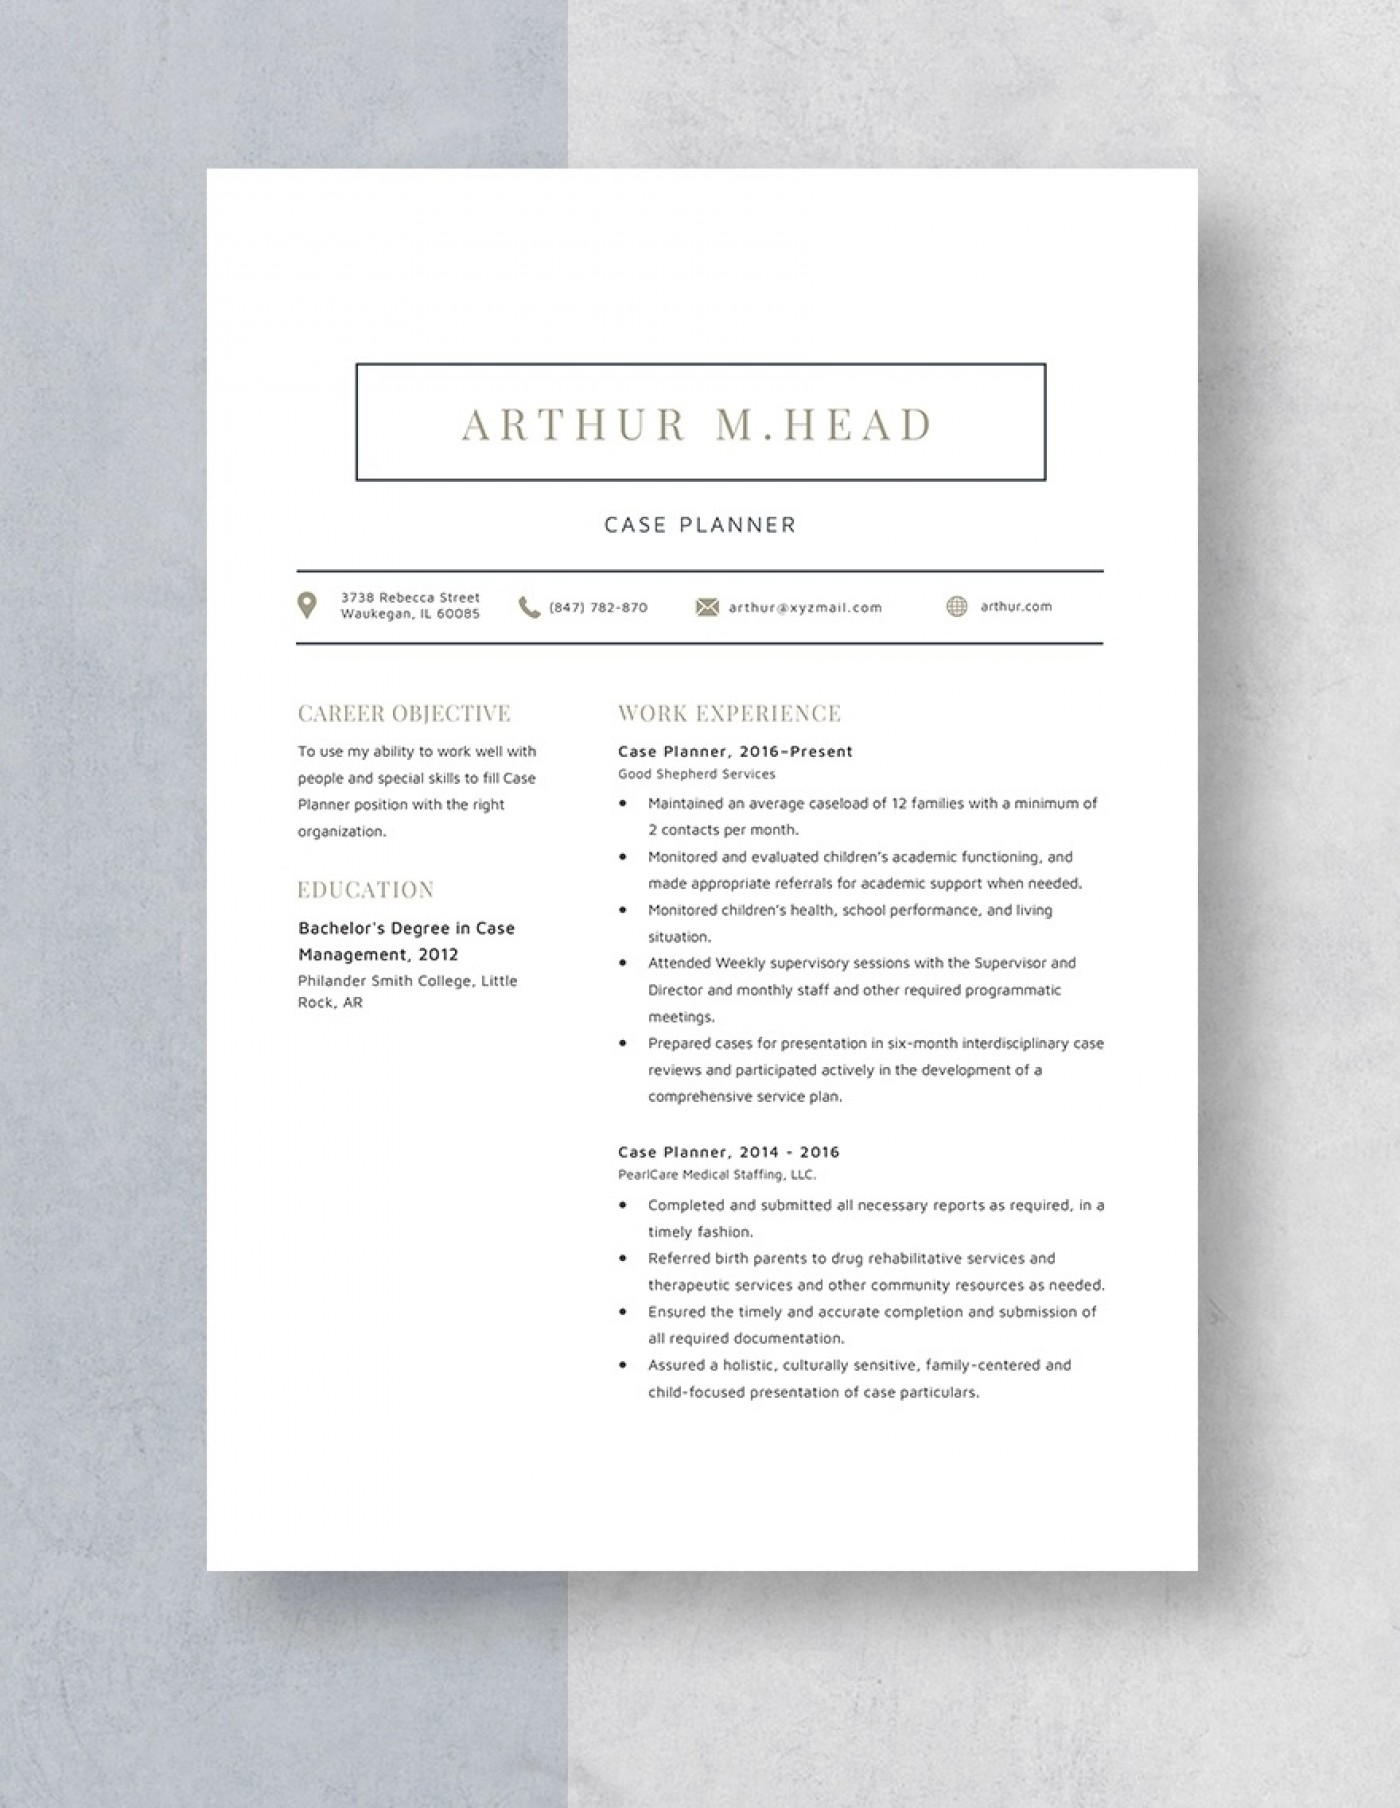 Template Case Planner Resume Idea 1400